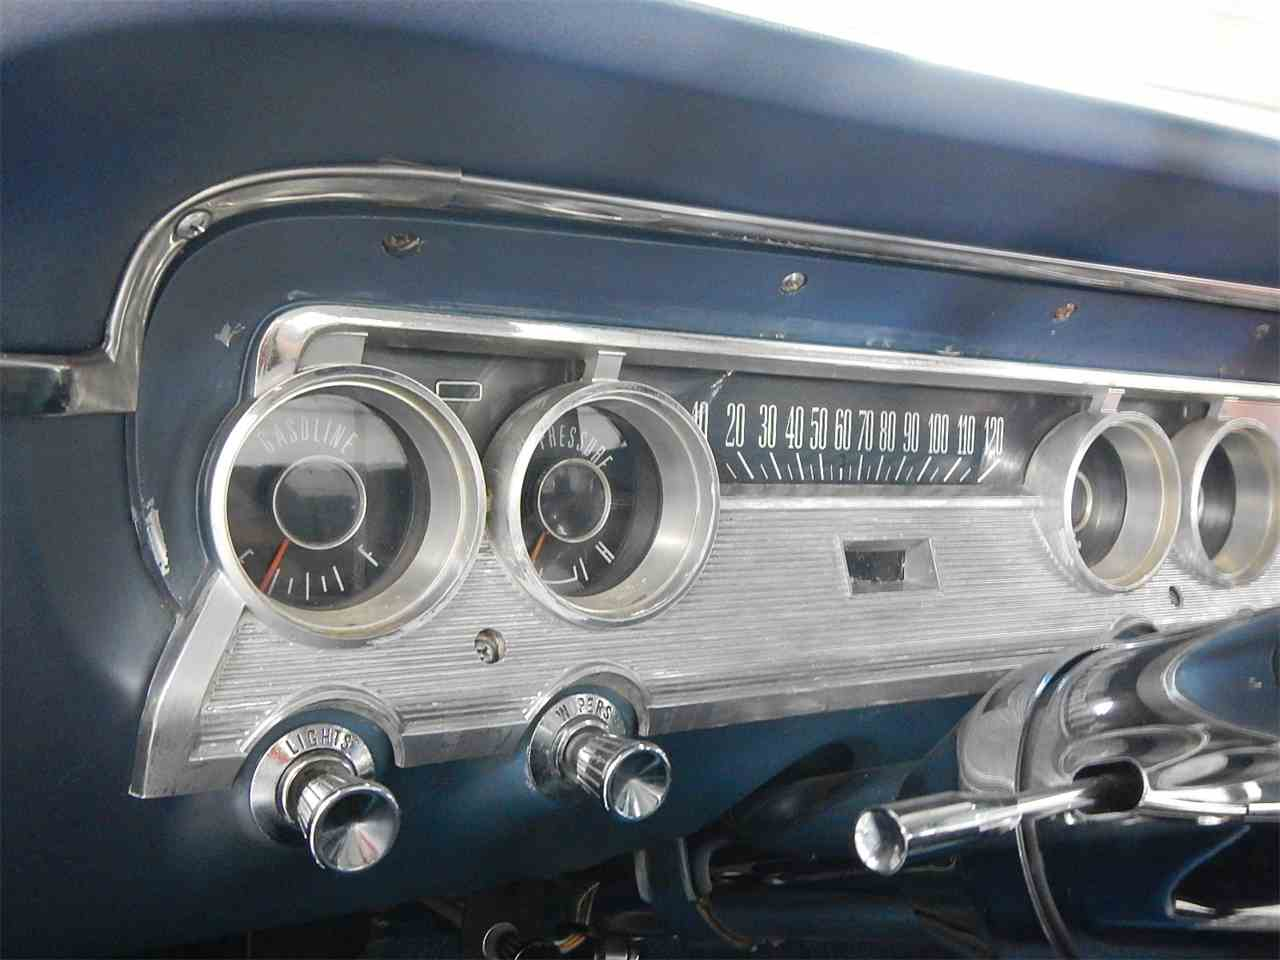 Large Picture of Classic '64 Mercury Comet Caliente located in Ohio - $19,500.00 Offered by Custom Rods & Muscle Cars - MDSA